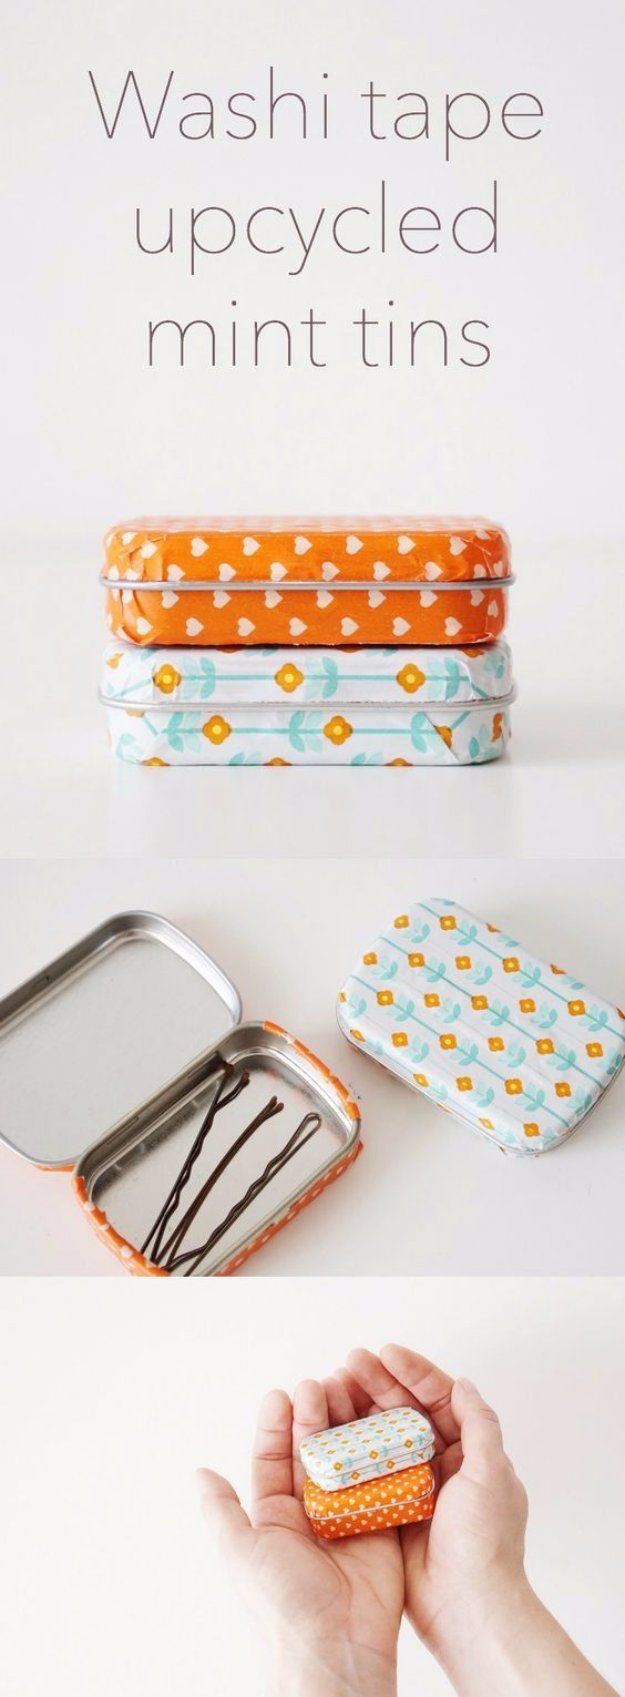 Easy Crafts To Make and Sell - Washi Tape Upcycled Mint Tins - Cool Homemade Craft Projects You Can Sell On Etsy, at Craft Fairs, Online and in Stores. Quick and Cheap DIY Ideas that Adults and Even Teens Can Make http://diyjoy.com/easy-crafts-to-make-and-sell